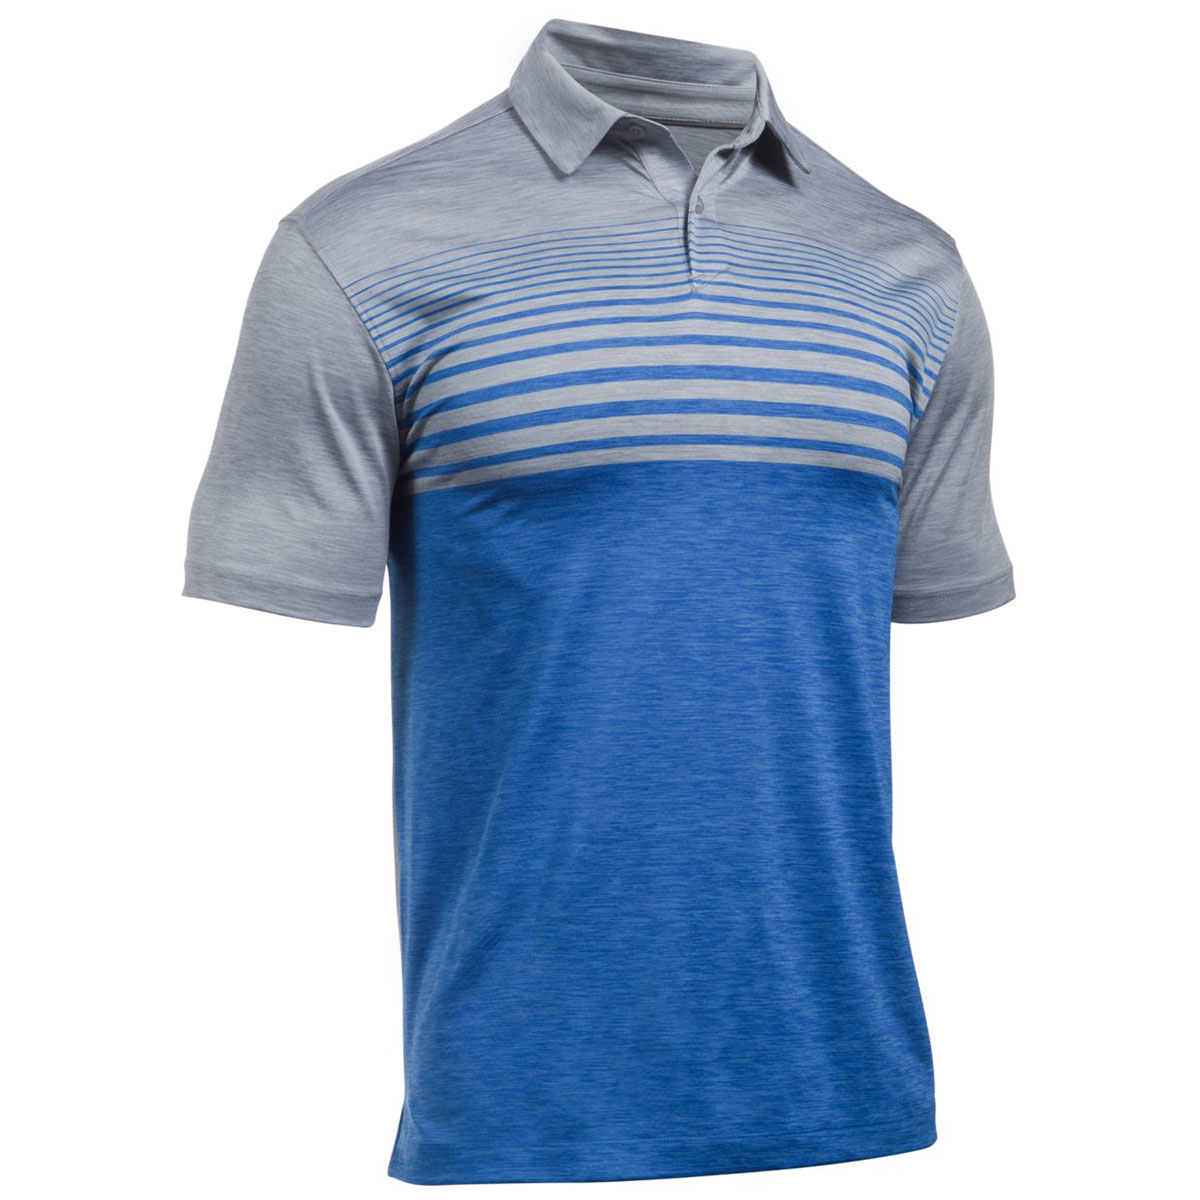 Under Armour 2017 Mens Ua Coolswitch Upright Stripe Golf